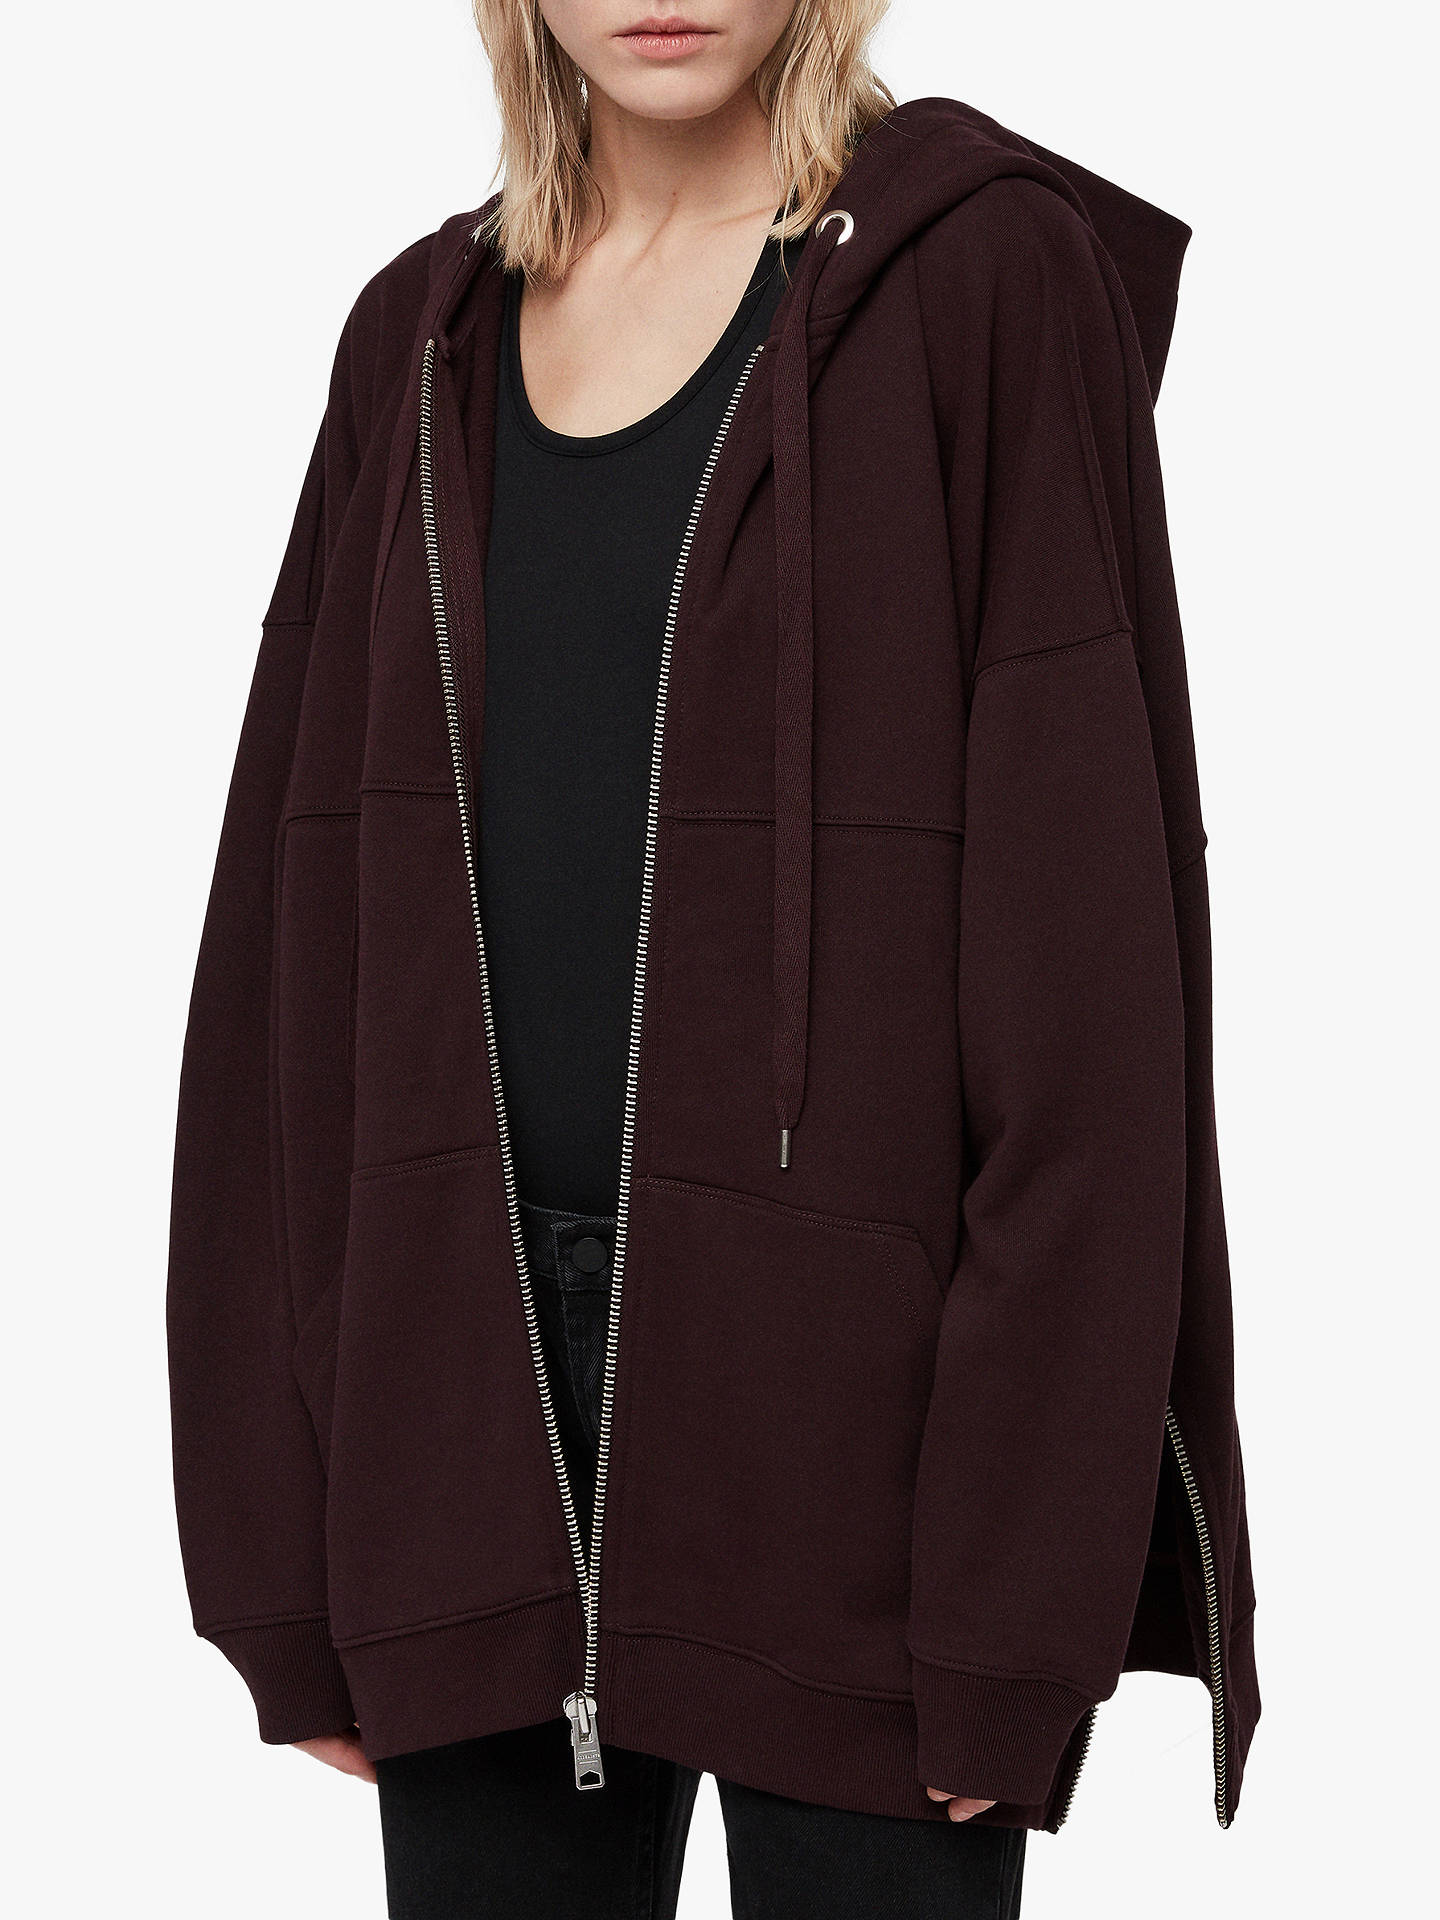 BuyAllSaints Bella Oversized Zip Up Hoodie, Dark Burgundy Red, M/L Online at johnlewis.com